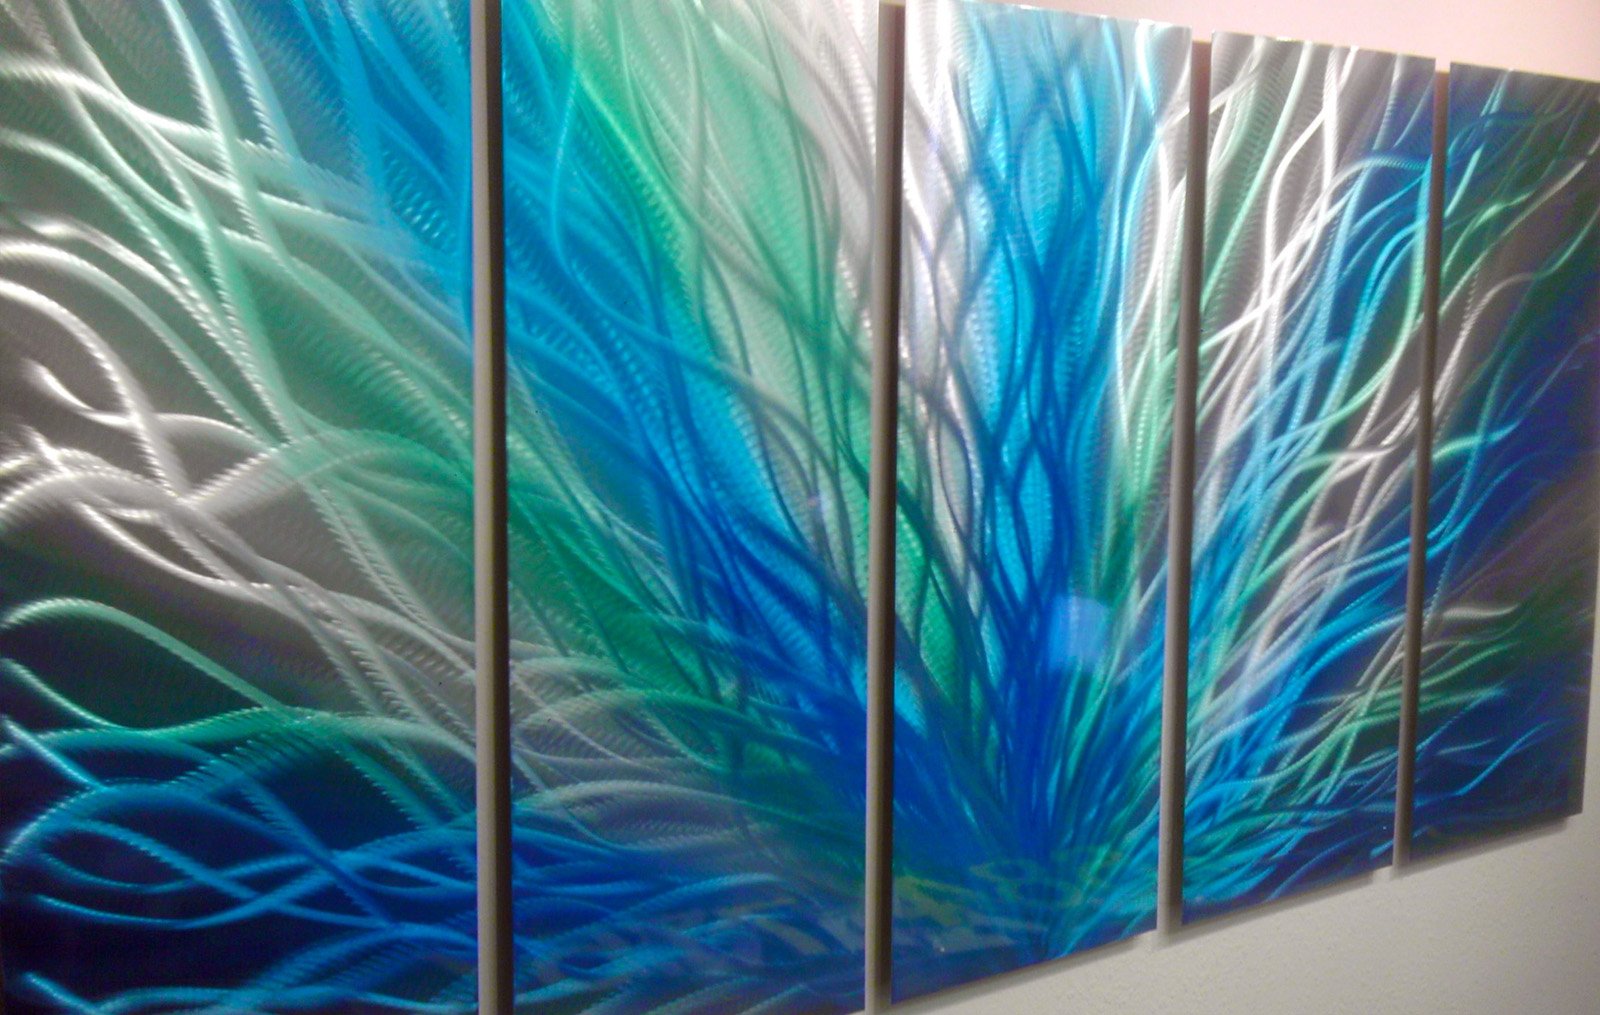 Blue Metal Wall Art Classy Radiance Large Green Blue Metal Wall Art Contemporary Modern Decorating Inspiration